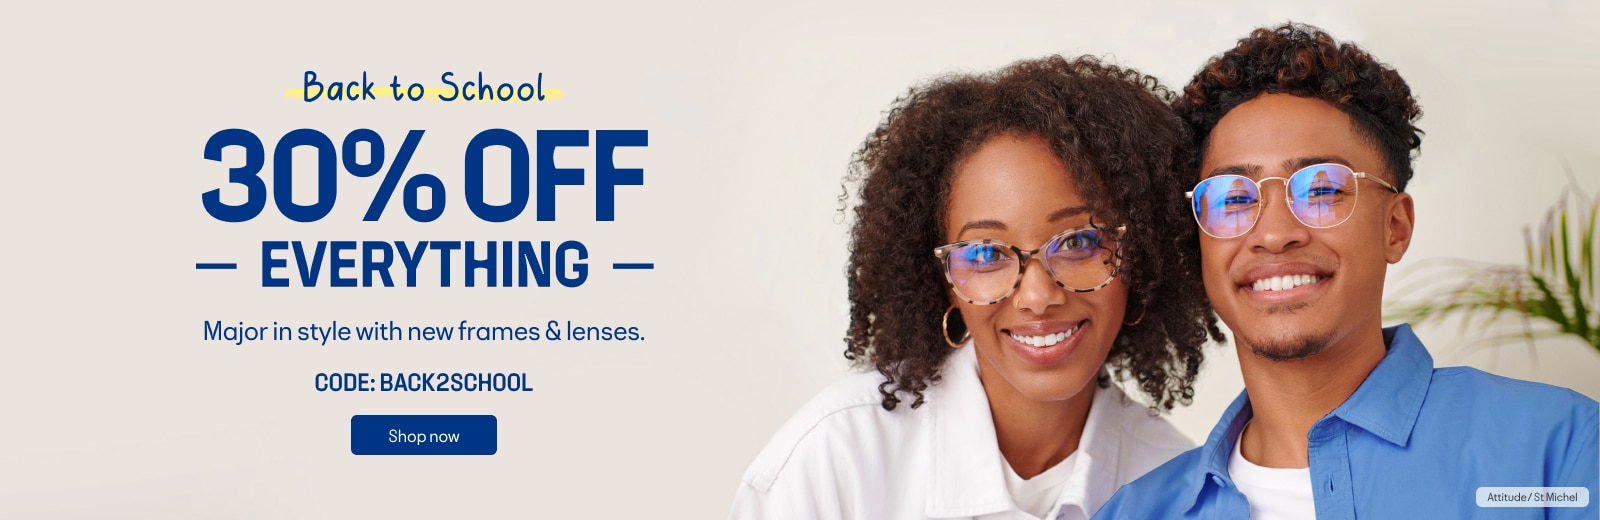 30% OFF EVERYTHING  Major in style with new frames & lenses.  CODE: BACK2SCHOOL